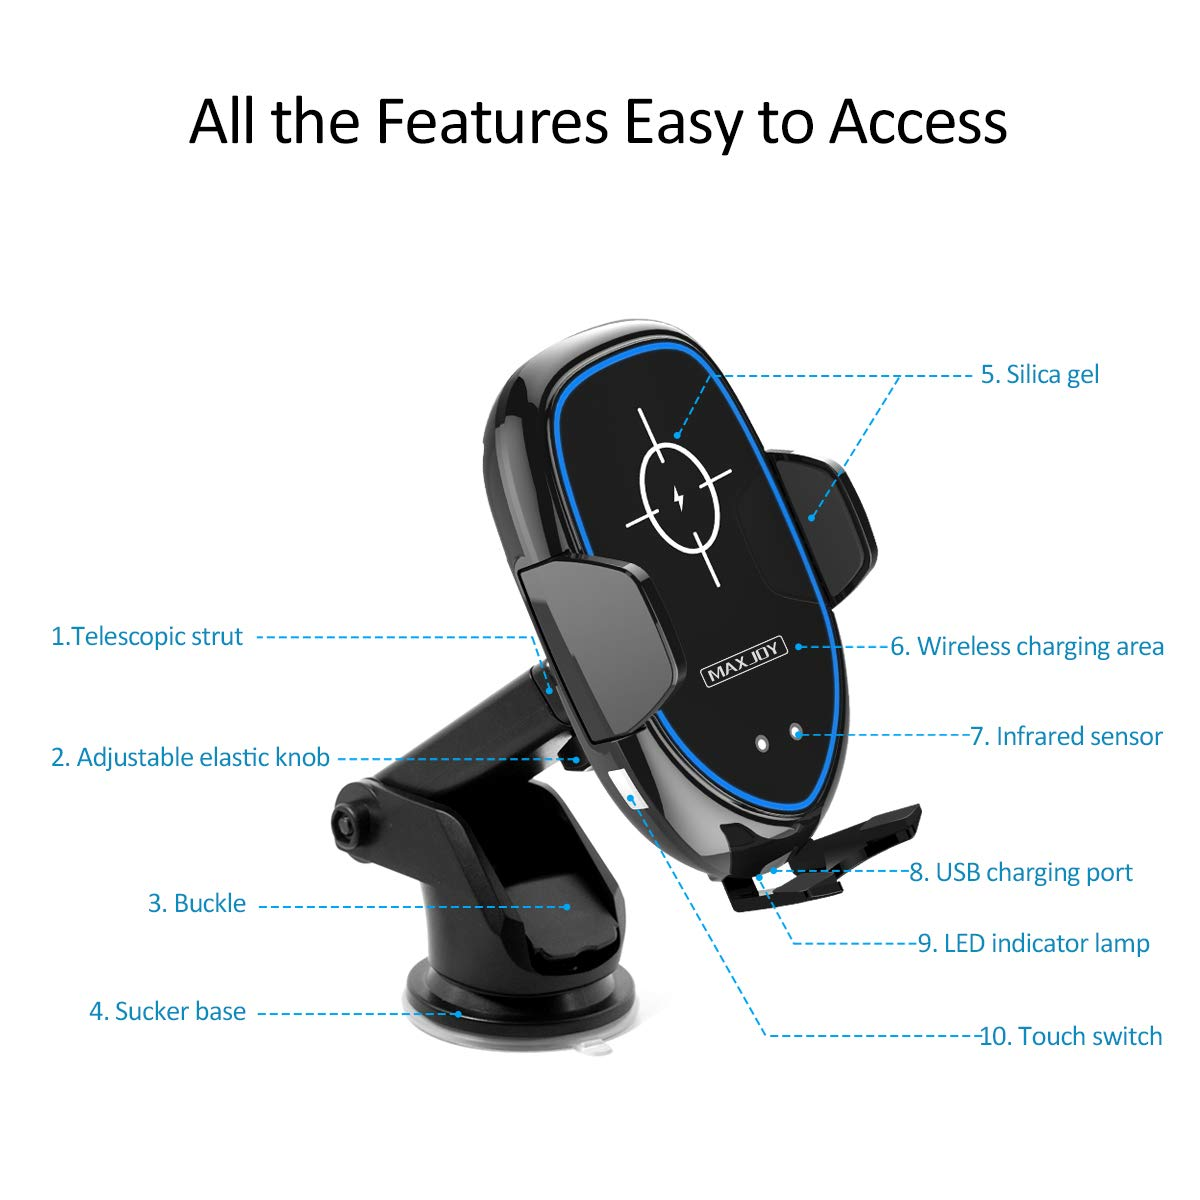 Wireless Car Charger, Maxjoy Qi Fast Charger Car Mount, 10W Wireless Car Charger Infrared Sensor Phone Holder Compatible for iPhone Xs Max XR X 8 8 Plus Samsung Galaxy S9 S9 Plus S8 Plus Note 8 5